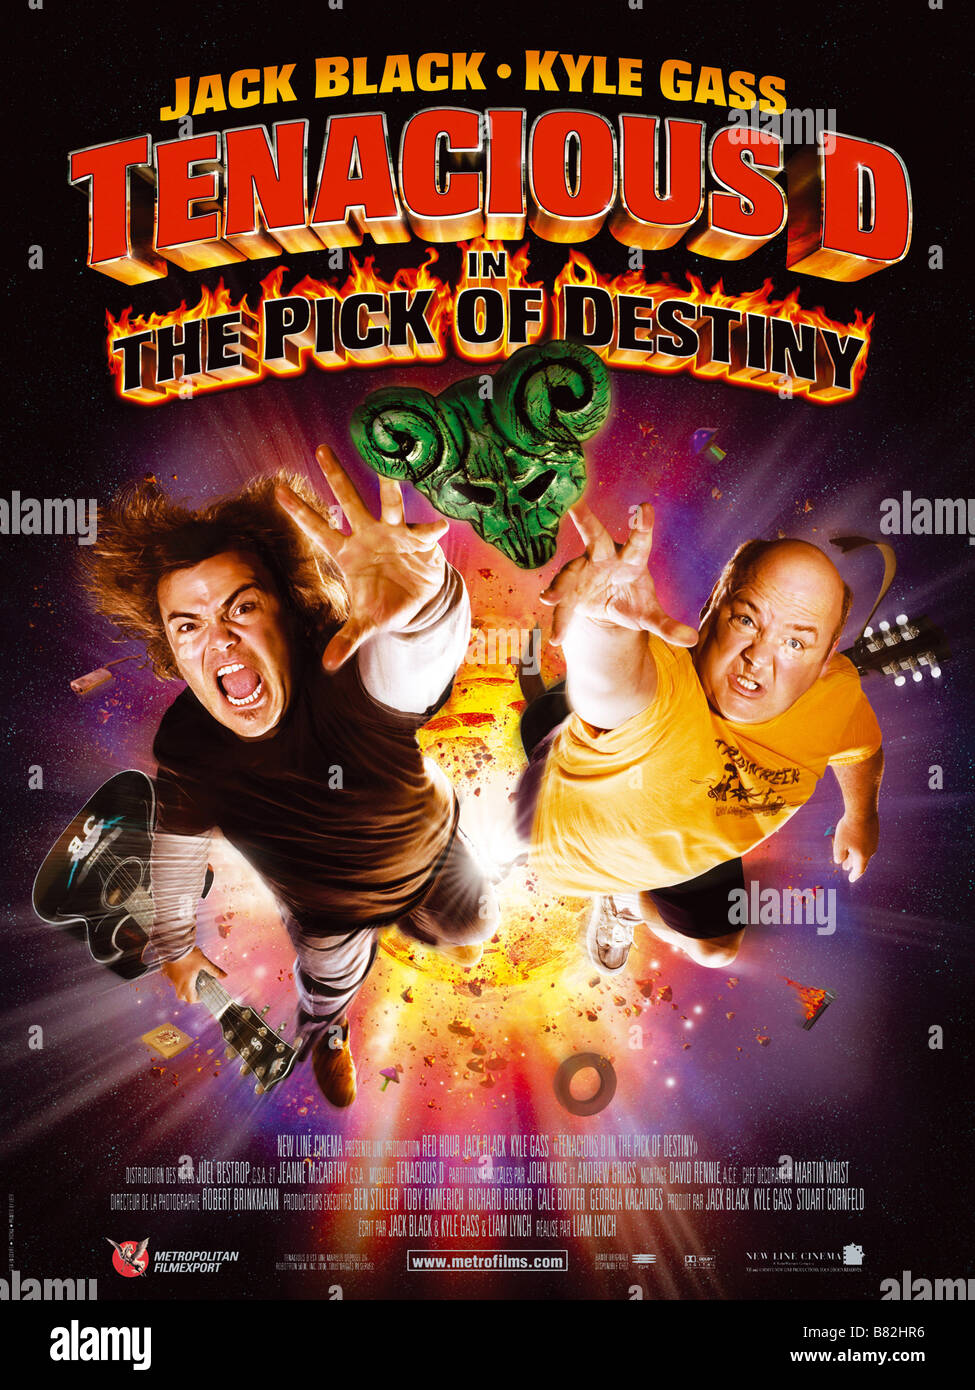 tenacious d movie - HD 975×1390